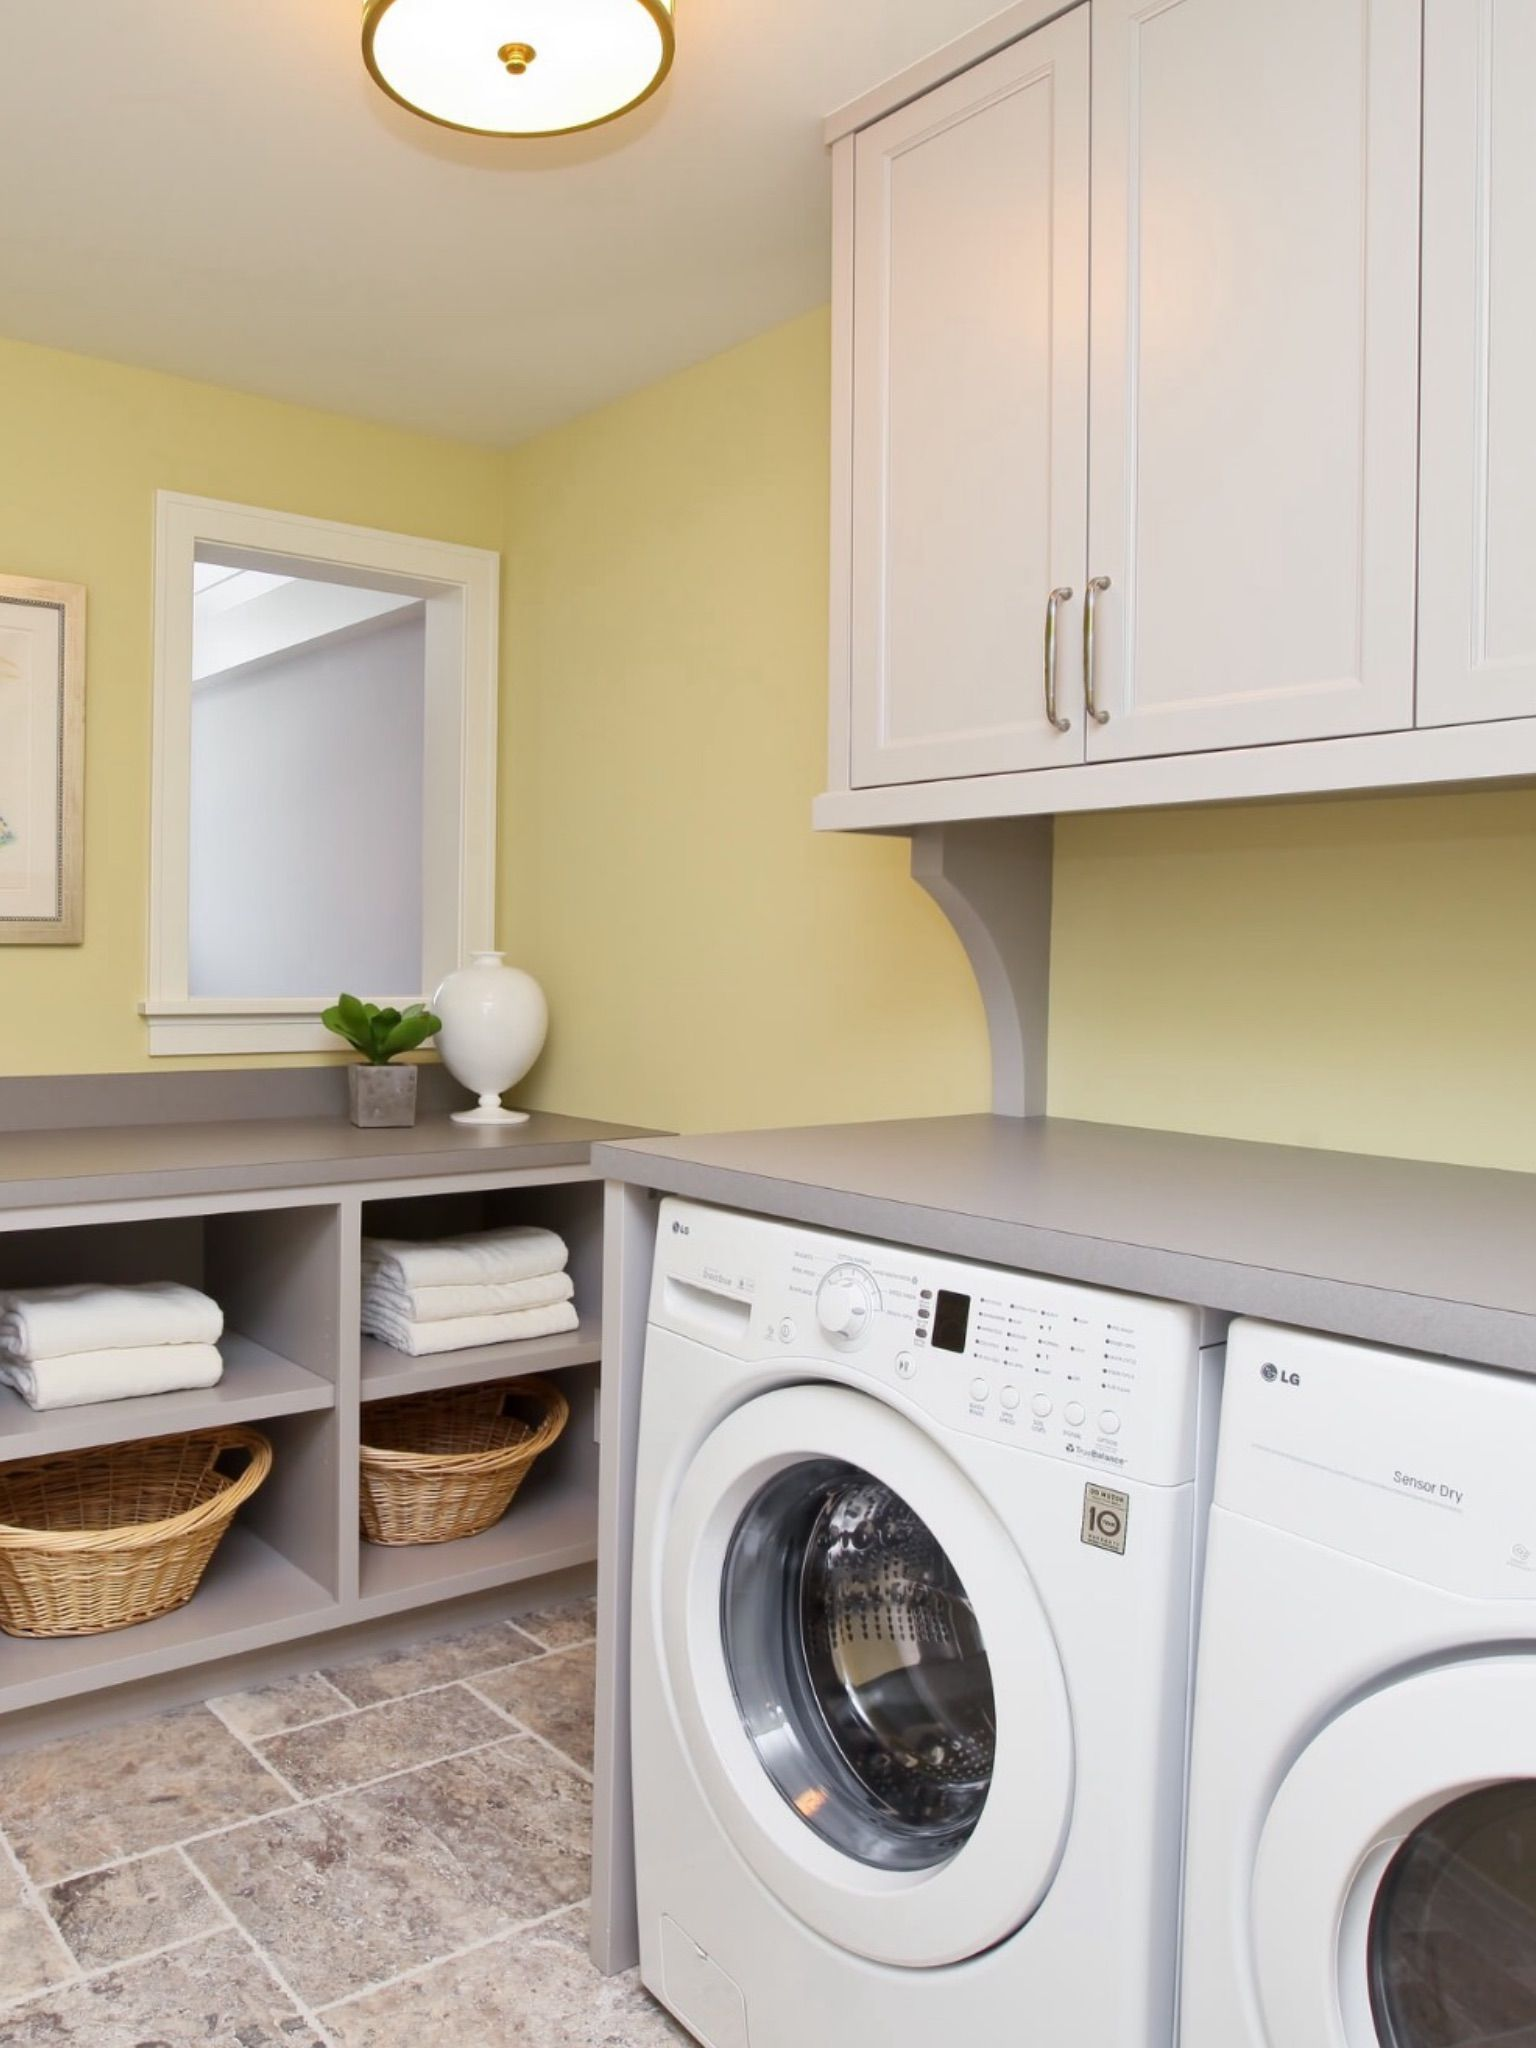 Pin by Julia on deko | Pinterest | Laundry rooms, Laundry and ...